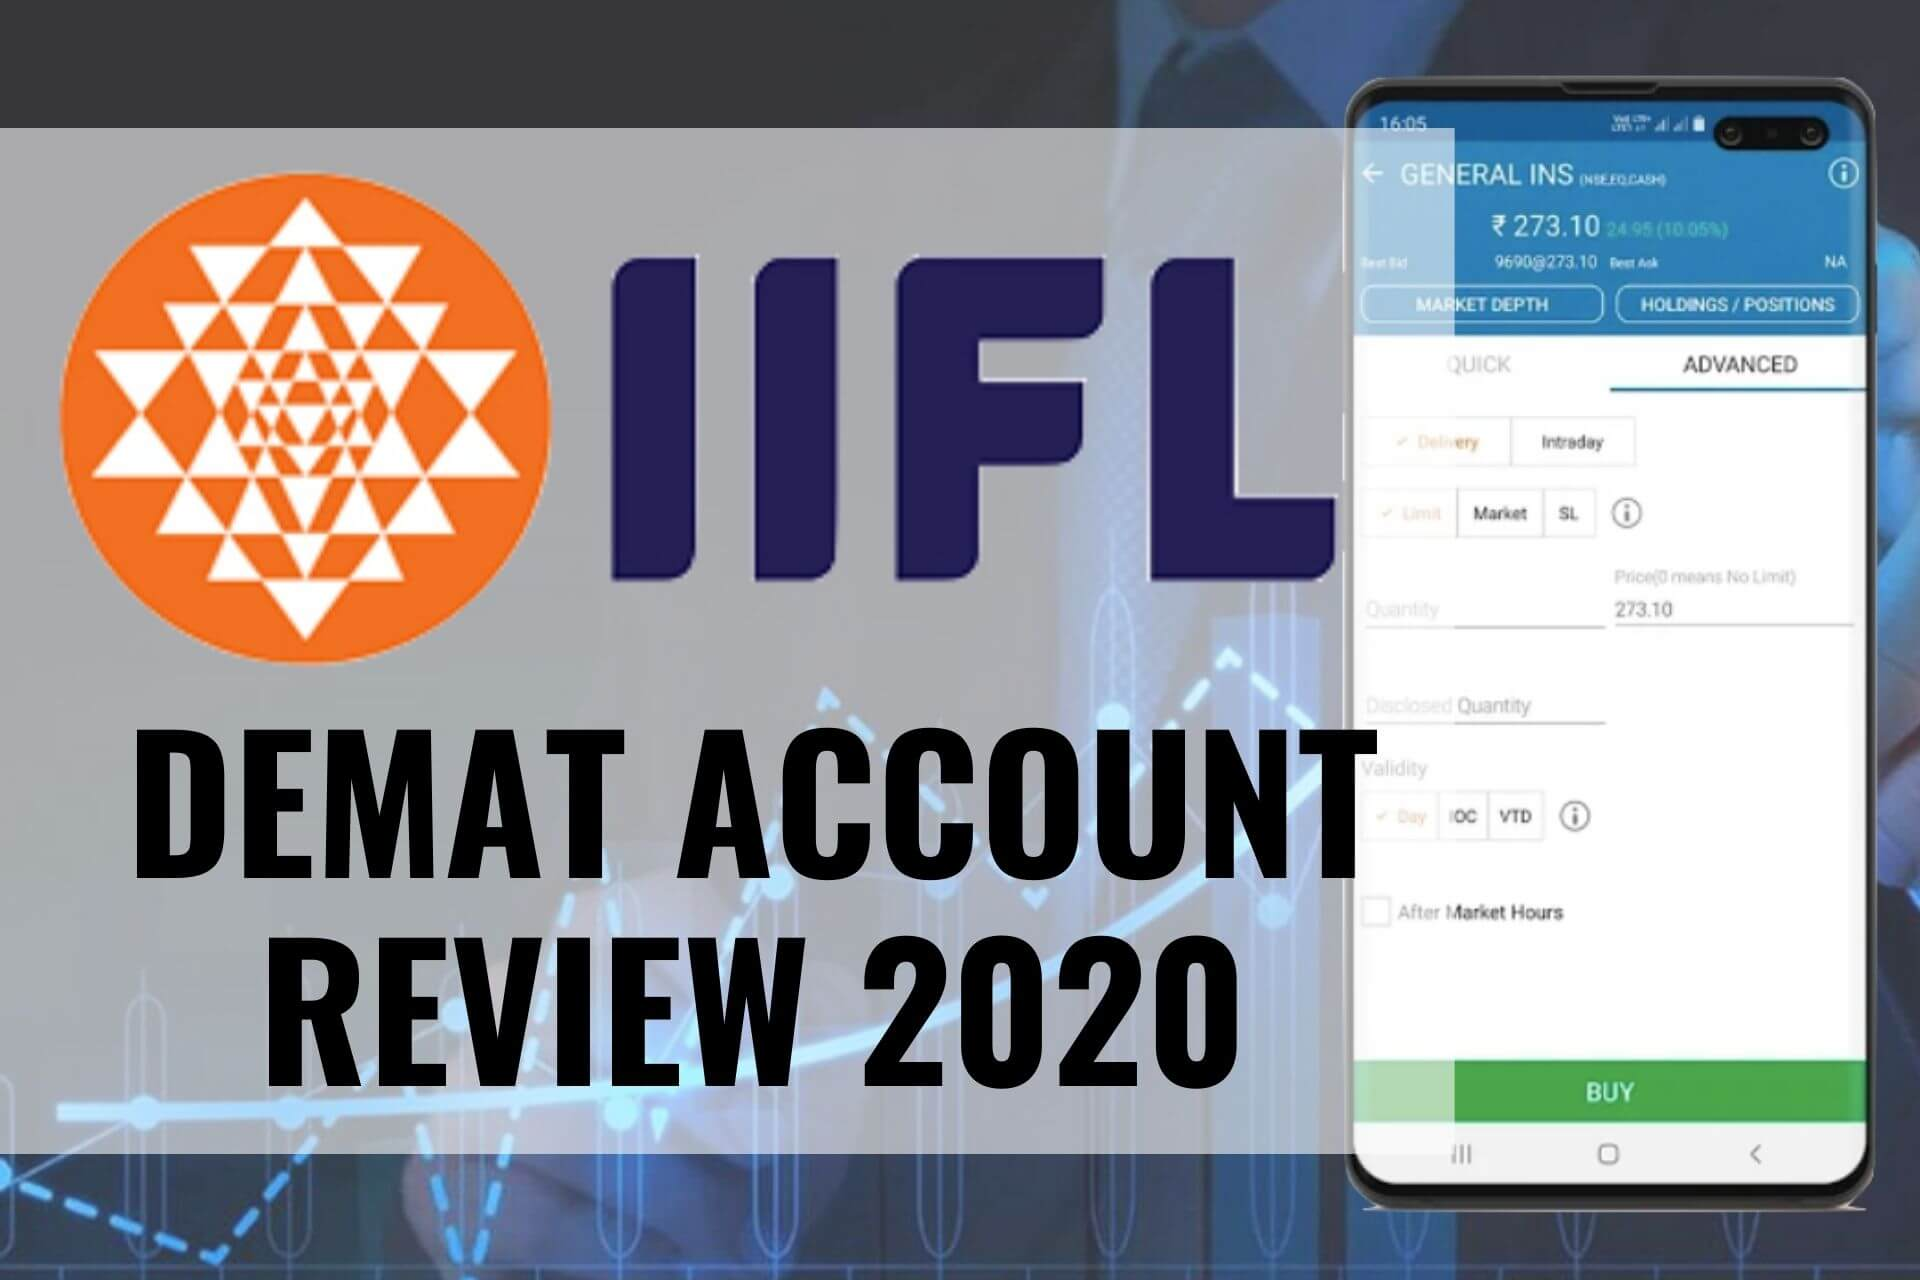 India Infoline - IIFL Securities Review 2020 _ Demat Account Summary